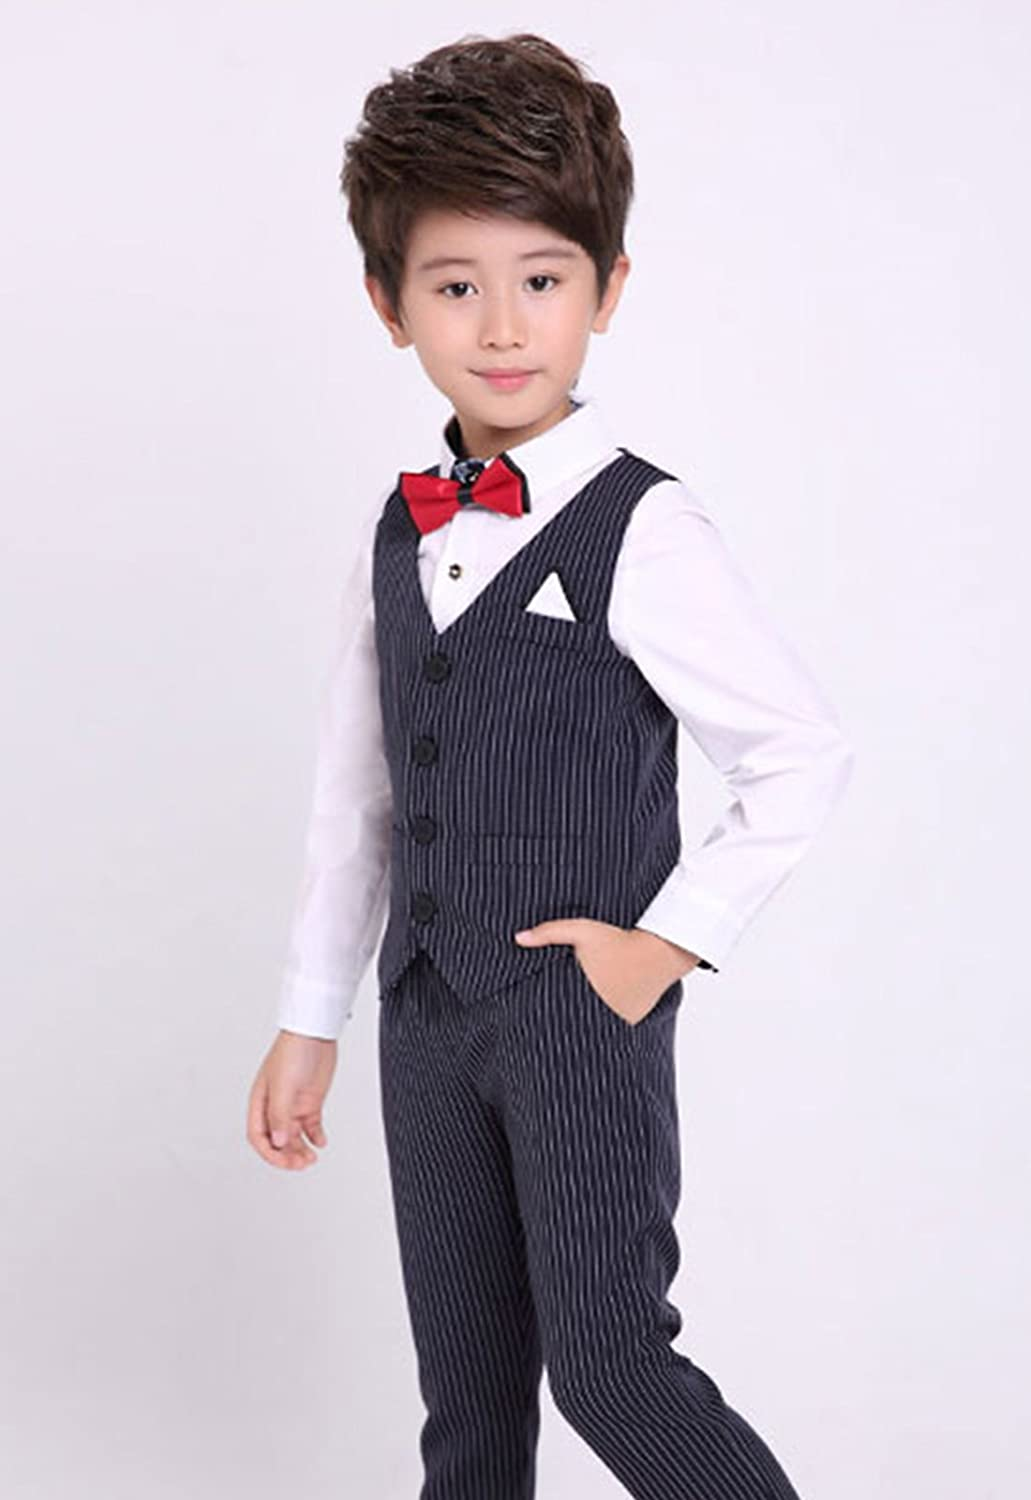 Luobobeibei Boys Suits 3 Pieces Slim Fit Fashion Formal Dress